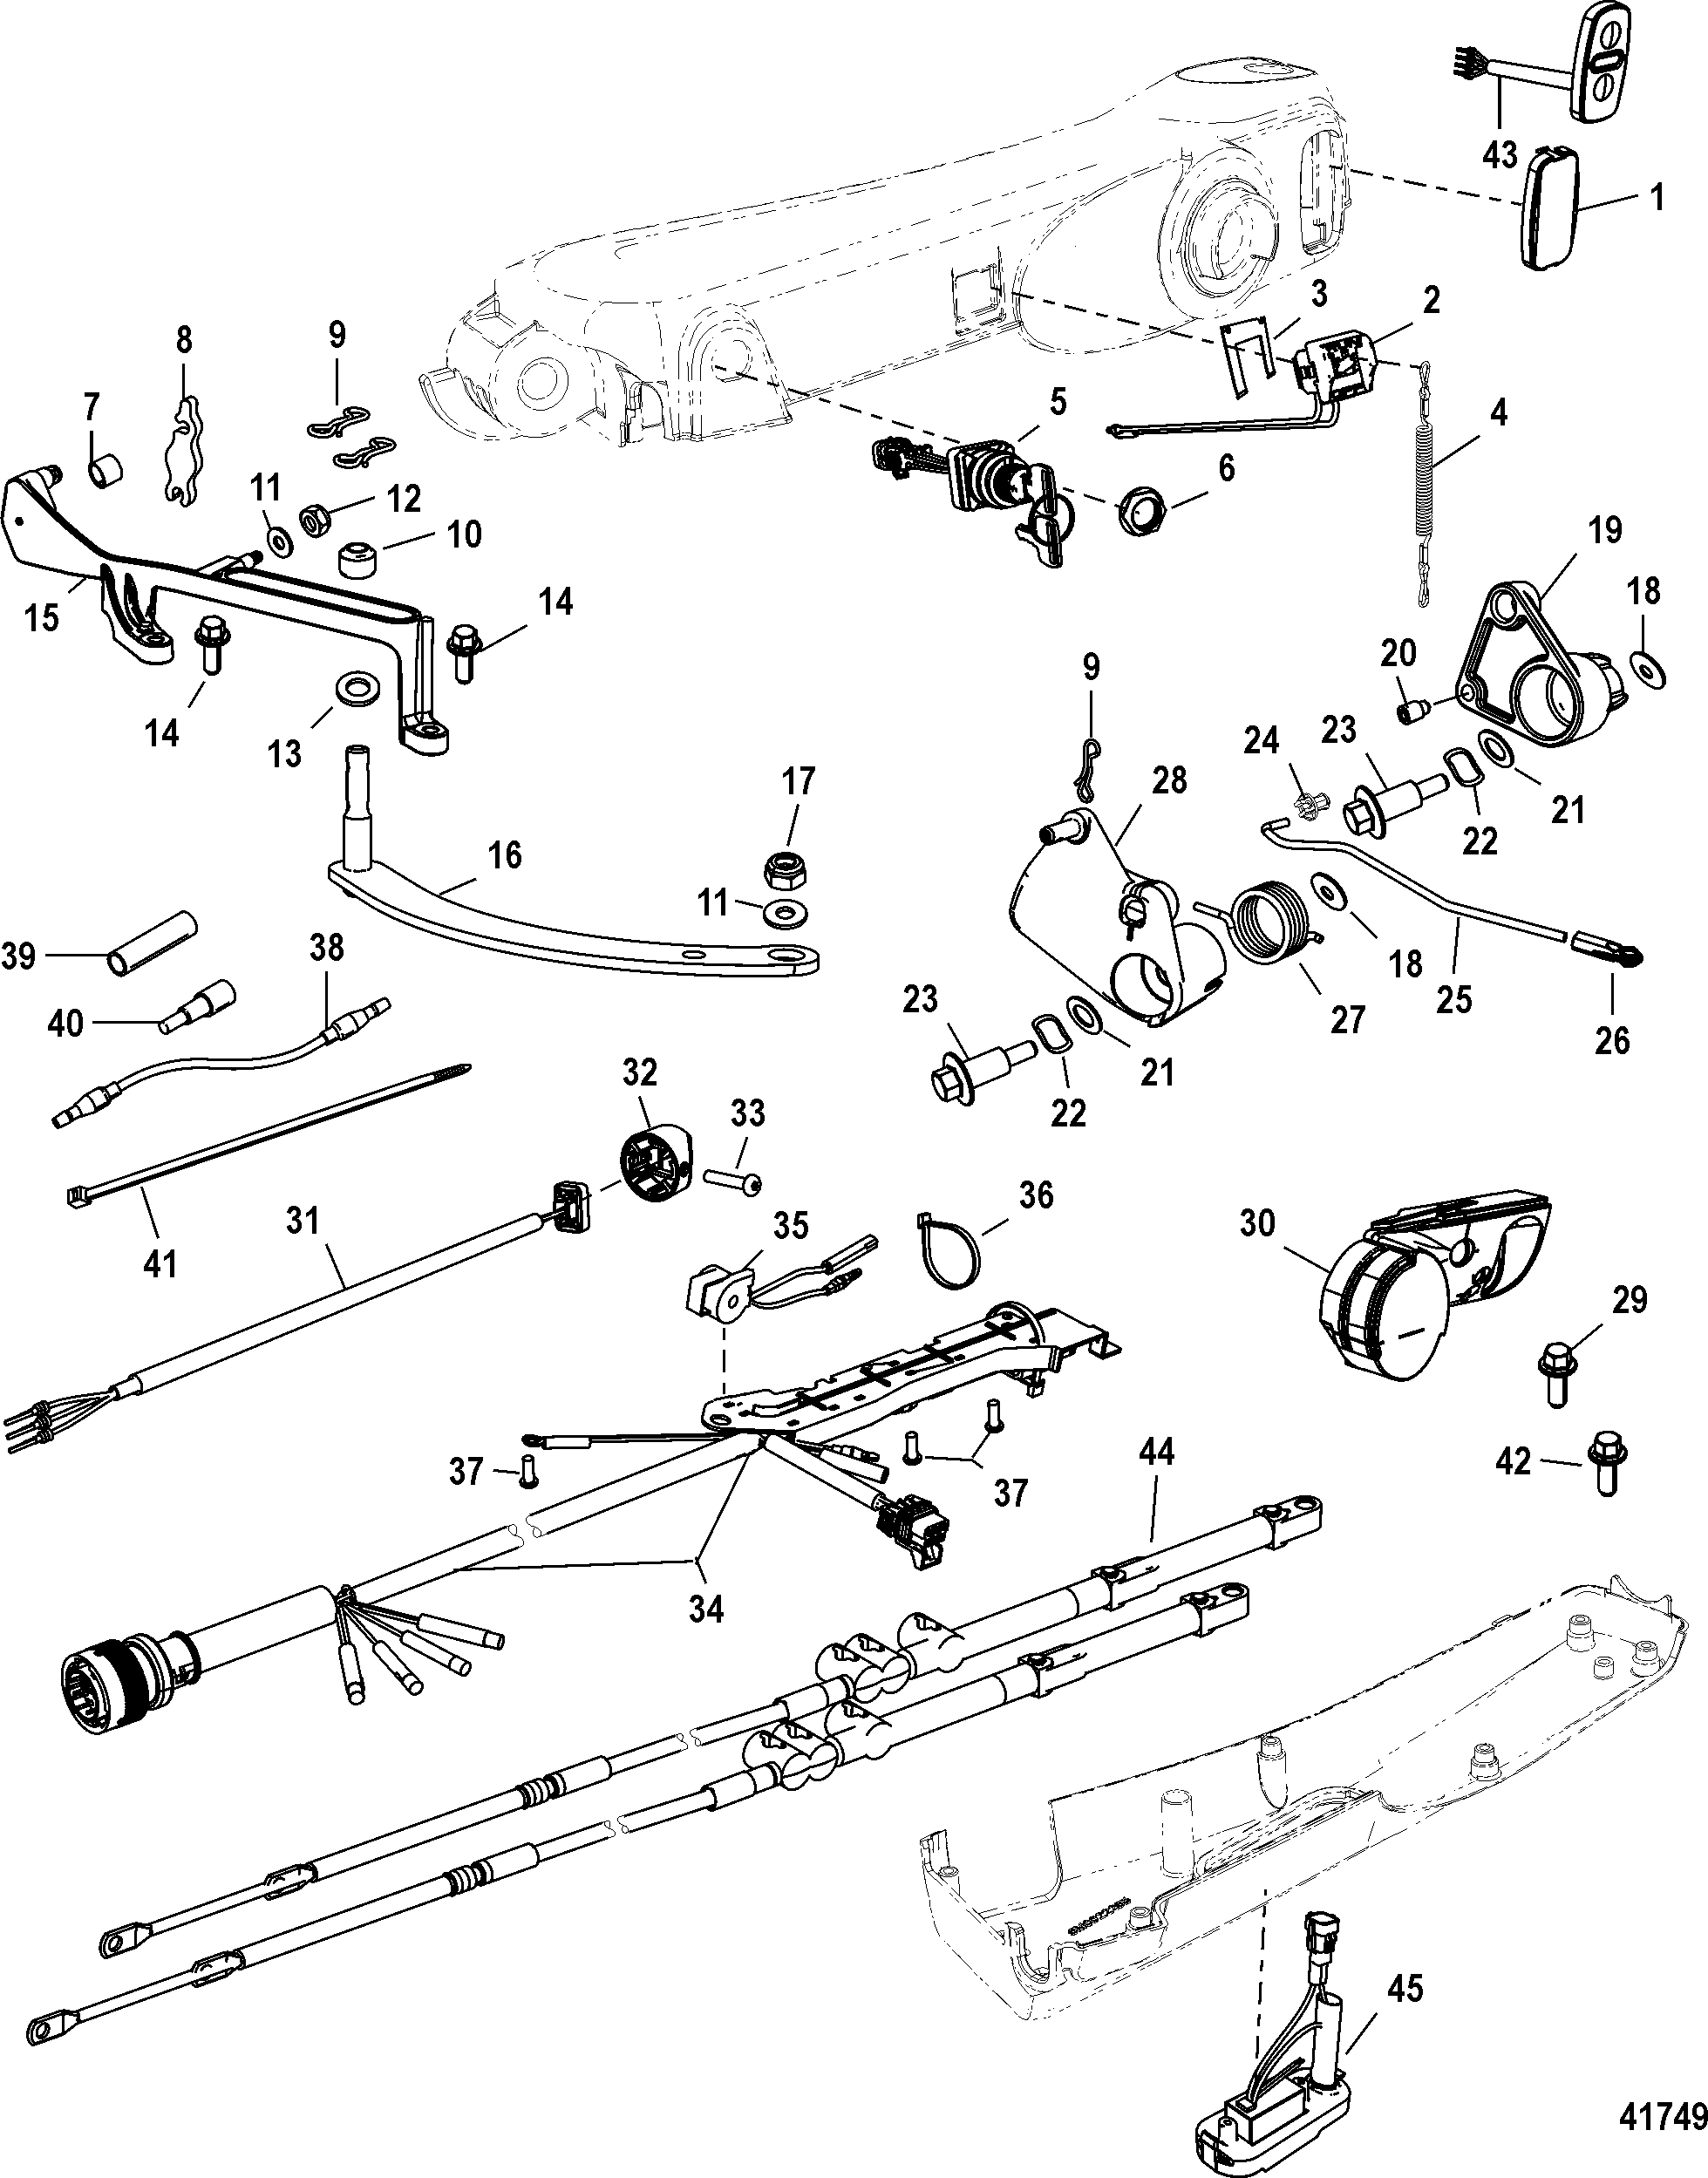 W25cfk Handle Parts Manual Guide